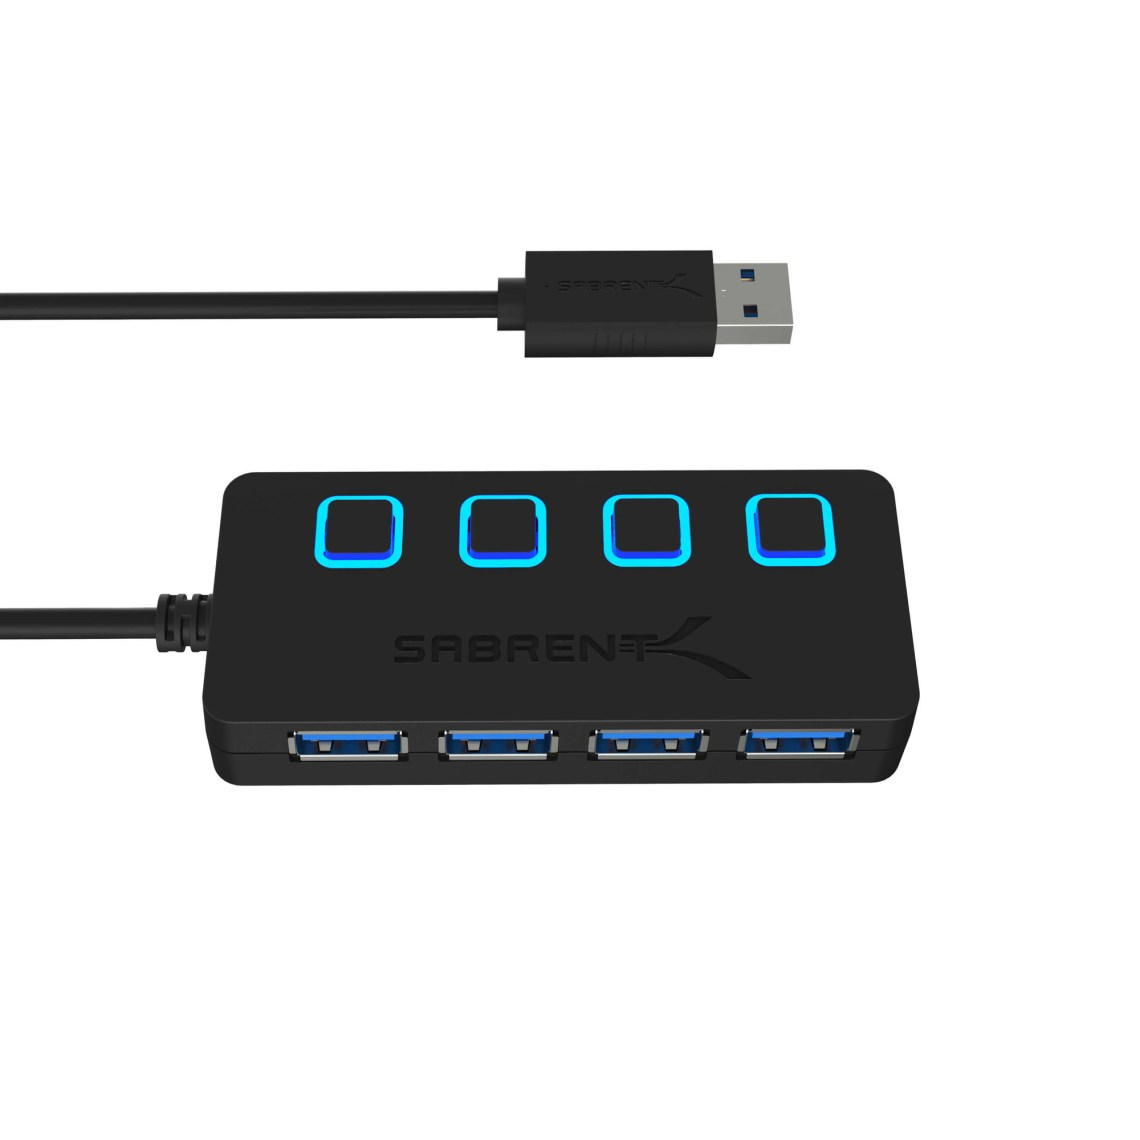 Add up to 4 devices quickly and easily with the Sabrent 4-Port USB 3.0 Hub. The thin\, lightweight design makes this hub the perfect travel companion to expand one USB 3.0 port into four. Especially great for notebooks which come with only a few ports in an era when you need to attach many USB devices at once\, such as a printer\, card reader\, cell phone\, iPod\, thumb drive\, mouse\, keyboard\, or an external hard drive.Plus\, each port has its own separate power switch with blue LED so you can control each port independently. Its small and elegant design has been configured to be as thin as possible so as to not take up space as you travel. The Sabrent hub is also backward compatible with your older devices\, so you can still use it in conjunction with USB 2.0 devices.